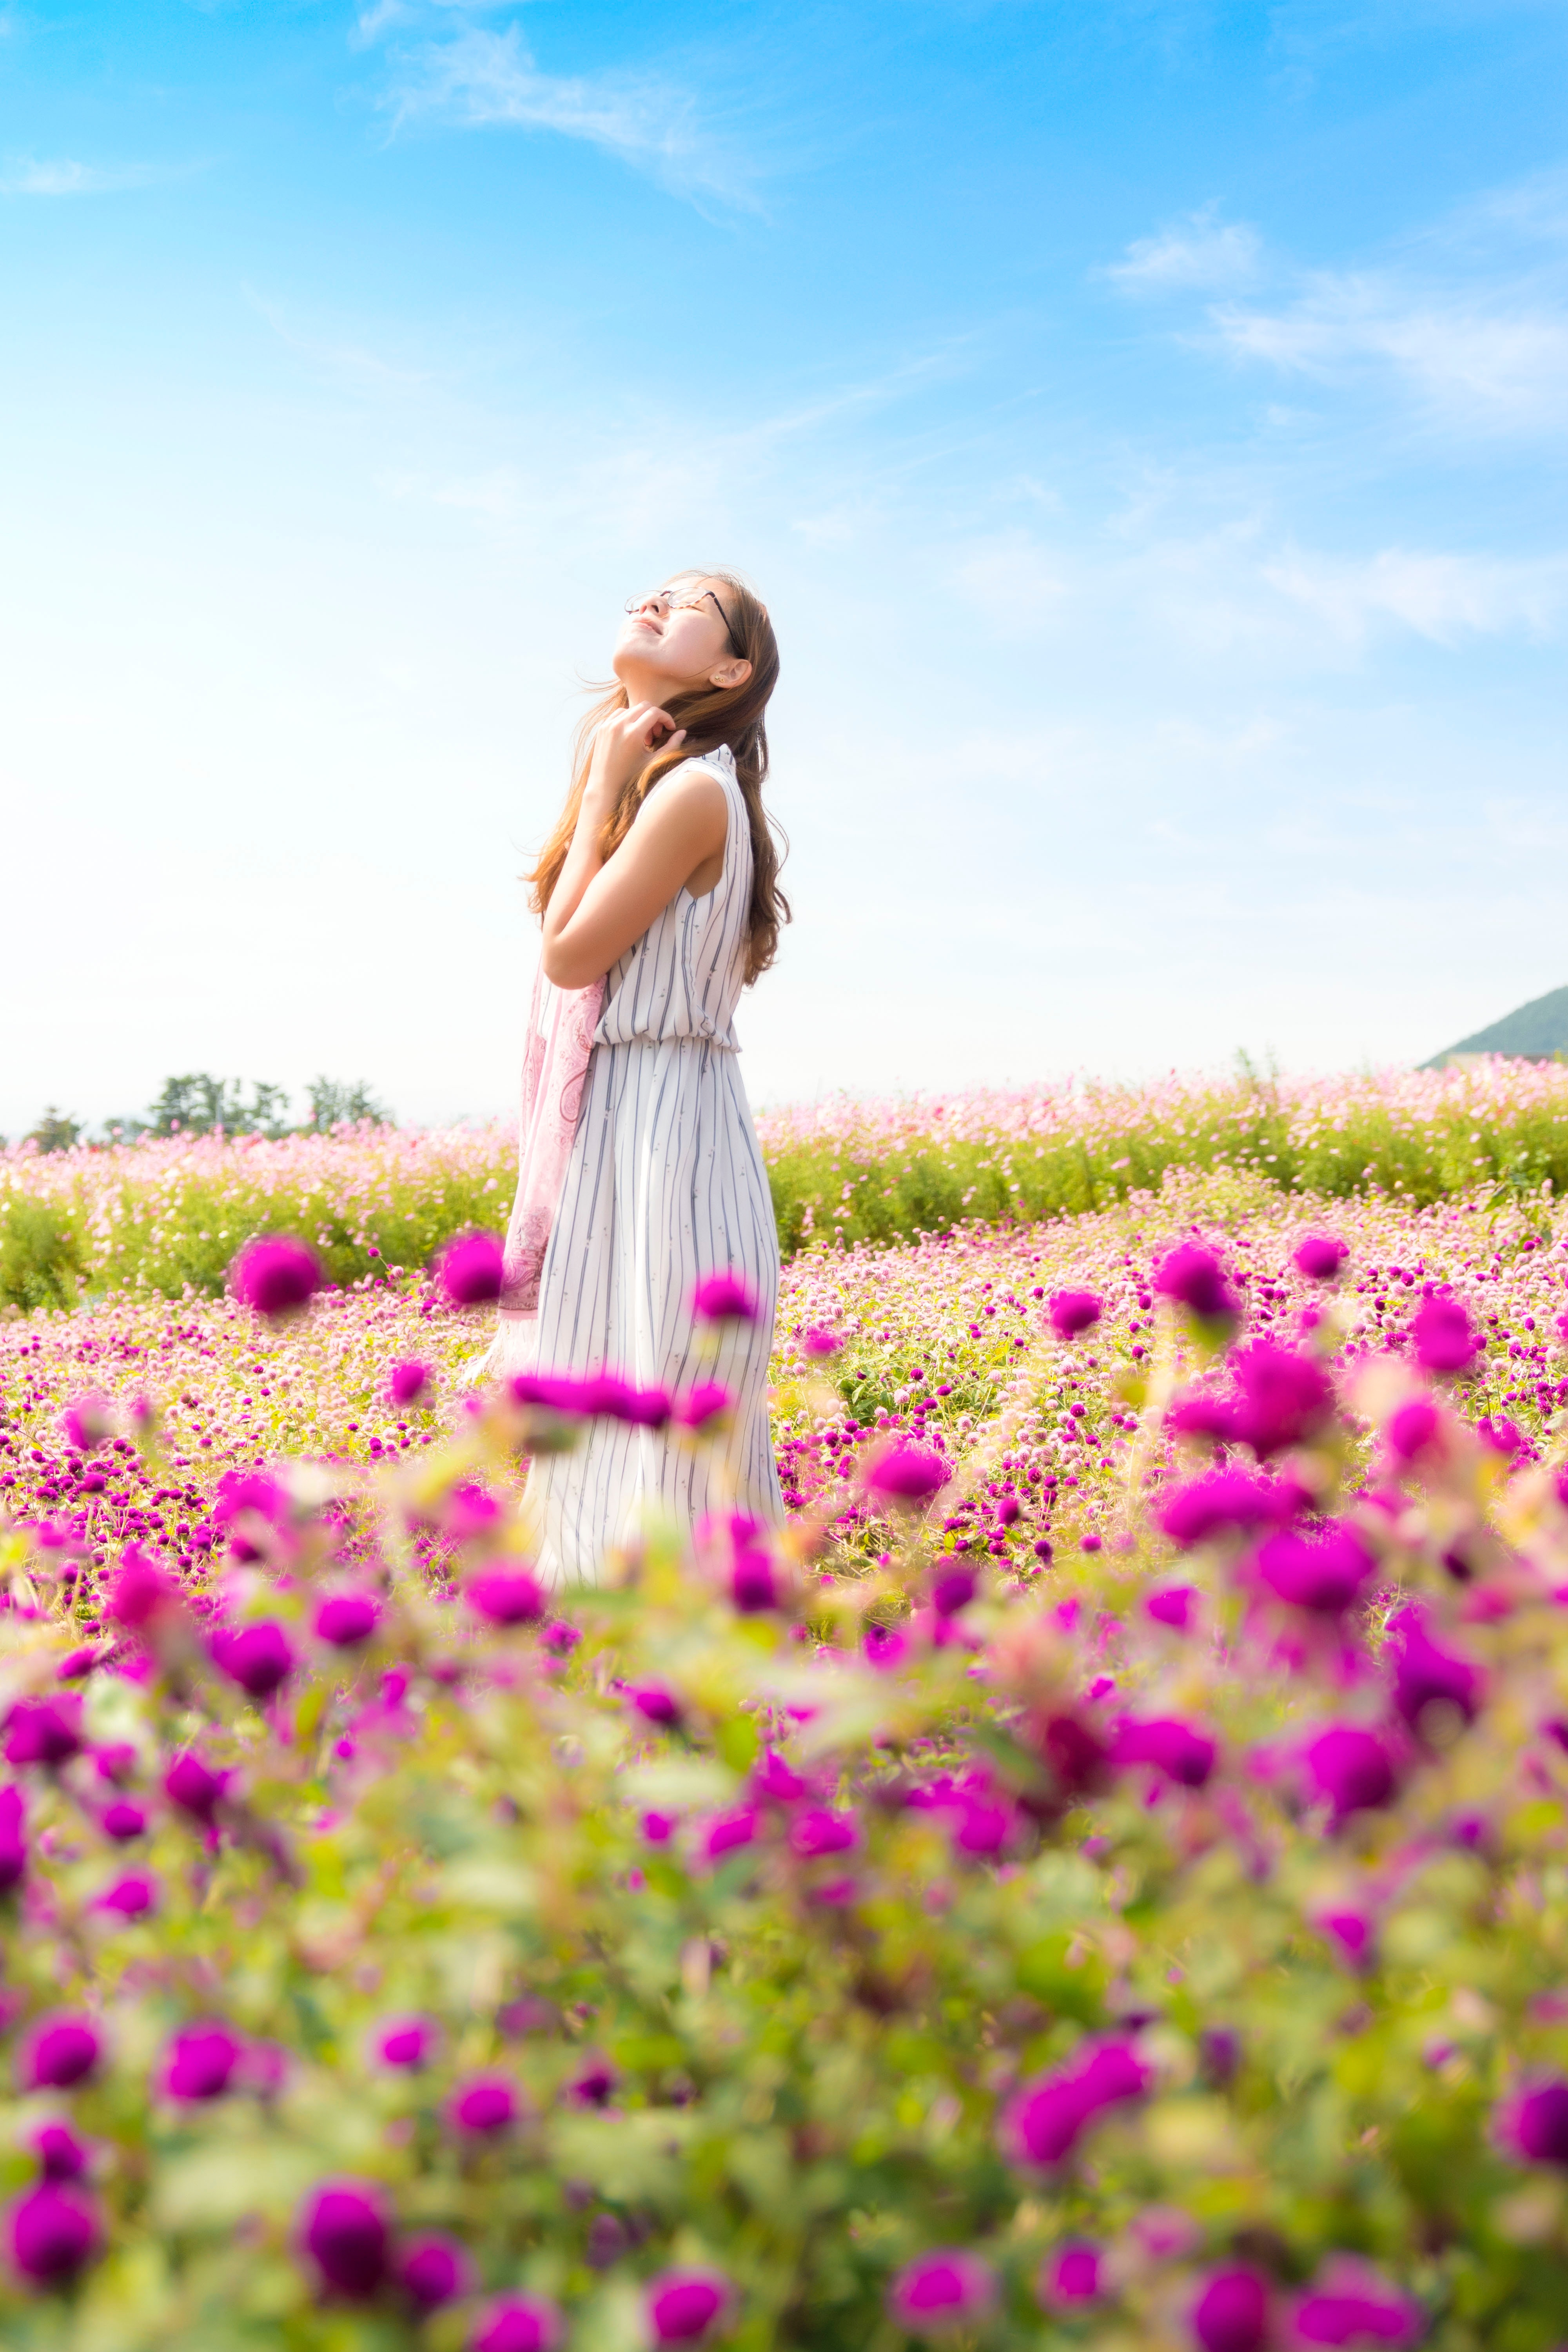 Woman Feeling Happy in A Field Of Flowers. Free From Anxiety and Depression